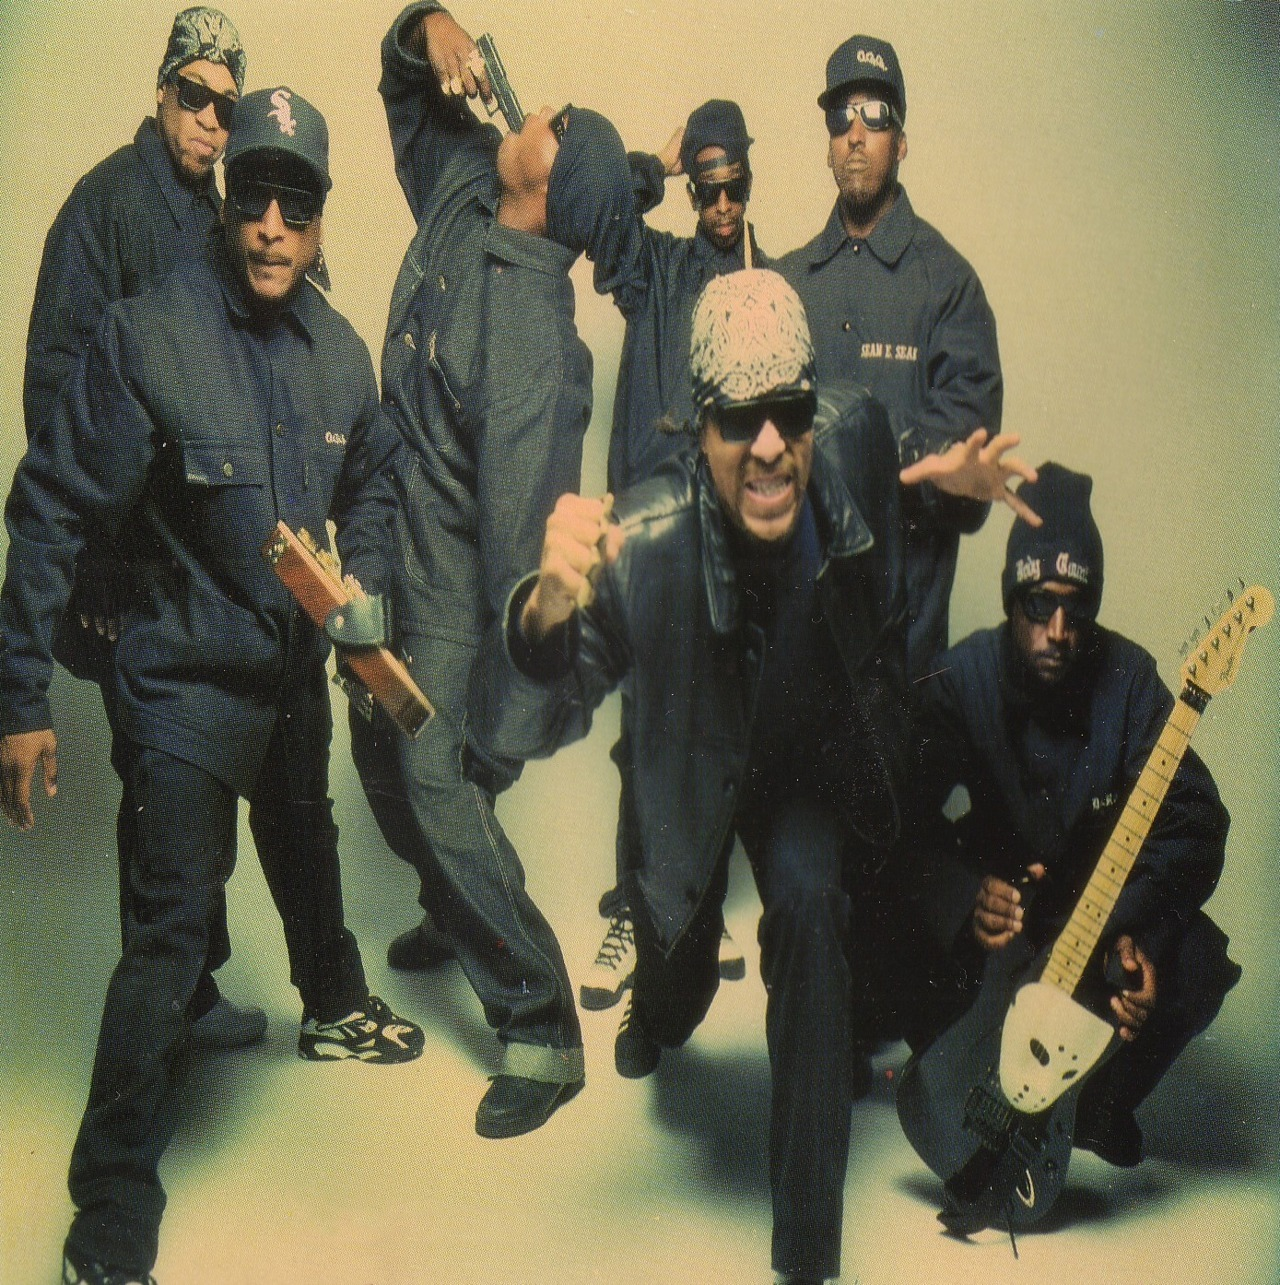 "BODY COUNT: LIFE AND TIMES OF HUSTLA' LOLLAPALOOZA SAN FRANCISCO 1991 Whoever said hustlin' ain't easy never met Ernie C. Back in 1991 I was working for Jello Biafra at Alternative Tentacles Records in San Francisco. It was that year, or maybe the year before, that Ice-T's heavy metal band Body Count had released an album that opened with a sample of one of Jello's spoken word recordings. Ice was a big fan of Dead Kennedys and Biafra. When Ice-T took Body Count out for their inaugural tour as a part of the first  Lollapalooza fest, he invited Jello to come out and say hello.  Biafra, myself and the rest of the small A.T. staff had been planning to go to the festival anyway because our friends in Nine Inch Nails were playing, and even if they hadn't been, we had peeps at Bill Graham Presents who always got us into shows out at the Shoreline Amphitheater in the suburbs near San Francisco where Lollapalooza would soon be happening. Jello let Ice know he'd be there. Luckily, I'd be there too. Yeah, I was waaaay cool back then. The festival was fun, totally sunny, tons of people, great bands, we got backstage, ate good food, I met some of the rockstars milling about, and ate way too many Jell-o shots. It just struck me… I don't remember Jello having any Jell-o shots… Each of the acts playing the fest had their own set of mobile-classroom type backstage trailers. We found Body Count's trailers and stopped by to visit. The guys were hanging out, looking very cool, very Gangsta. They were all super nice, Ice-T was as friendly and down-to-earth a man as you could hope to meet, and it was all very pleasant. We had been chatting for while when the band's lead guitarist Ernie C., who had been absent until now, entered the scene carrying an empty duffle bag, looking amused and more than a little bit pleased with himself.  Ernie C. (who Ice would later introduce from the stage colorfully as ""…the ignorant lil' n-gga on lead guitar…"") explained to everyone where he had been. He told us he was outside in the parking lot of the venue selling Body Count T-shirts directly to fans as a way of circumventing having to give Bill Graham Presents the 20% cut they took off the top from the legitimate merchandise stands run by their staff inside the place.  Security had busted Ernie in the parking lot and refused to believe he was in the band, which is not an unreasonable assumption for them to have made, after all: why would a rockstar be out in the parking lot standing in the hot sun selling his band's t-shirts from a duffle bag? You can't really blame the security for not knowing that the reason this was happening was because this particular rockstar happened to be a CERTIFIED HUSTLA' off the streets of South Central Los Angeles by the name of ERNIE C.! …that's why! Ernie smooth talked, shrugged off, and ultimately convinced security he was legit without having to give up one dollar of the fat stack of cash he'd earned out there. Score one for Ernie C.! Later as we left, Biafra mentioned to Ice-T how much he admired the oversized, black, padded jackets the band was wearing. The ones with the embroidered Body Count Logo on the back that was a take off on the famous Oakland Raiders logo. Ice asked if he wanted one and Biafra said he did. As soon as Jello expressed his wish, Ice told one of his entourage to ""give the man your jacket"". Much to the apparent chagrin of the big dude wearing the jacket in question I might add.  The A.T. guys and I protested that it wouldn't be right and it was far too kind to give Jello the jacket off the guy's back. Biafra thought it was okay however and that the guy could always get a new one and so it was that Biafra took the jacket and put it on along with his new Body Count stocking hat. The only thing missing from his ensemble were the dark, wrap around shades. Score one for Biafra. Body Count photo from the web."